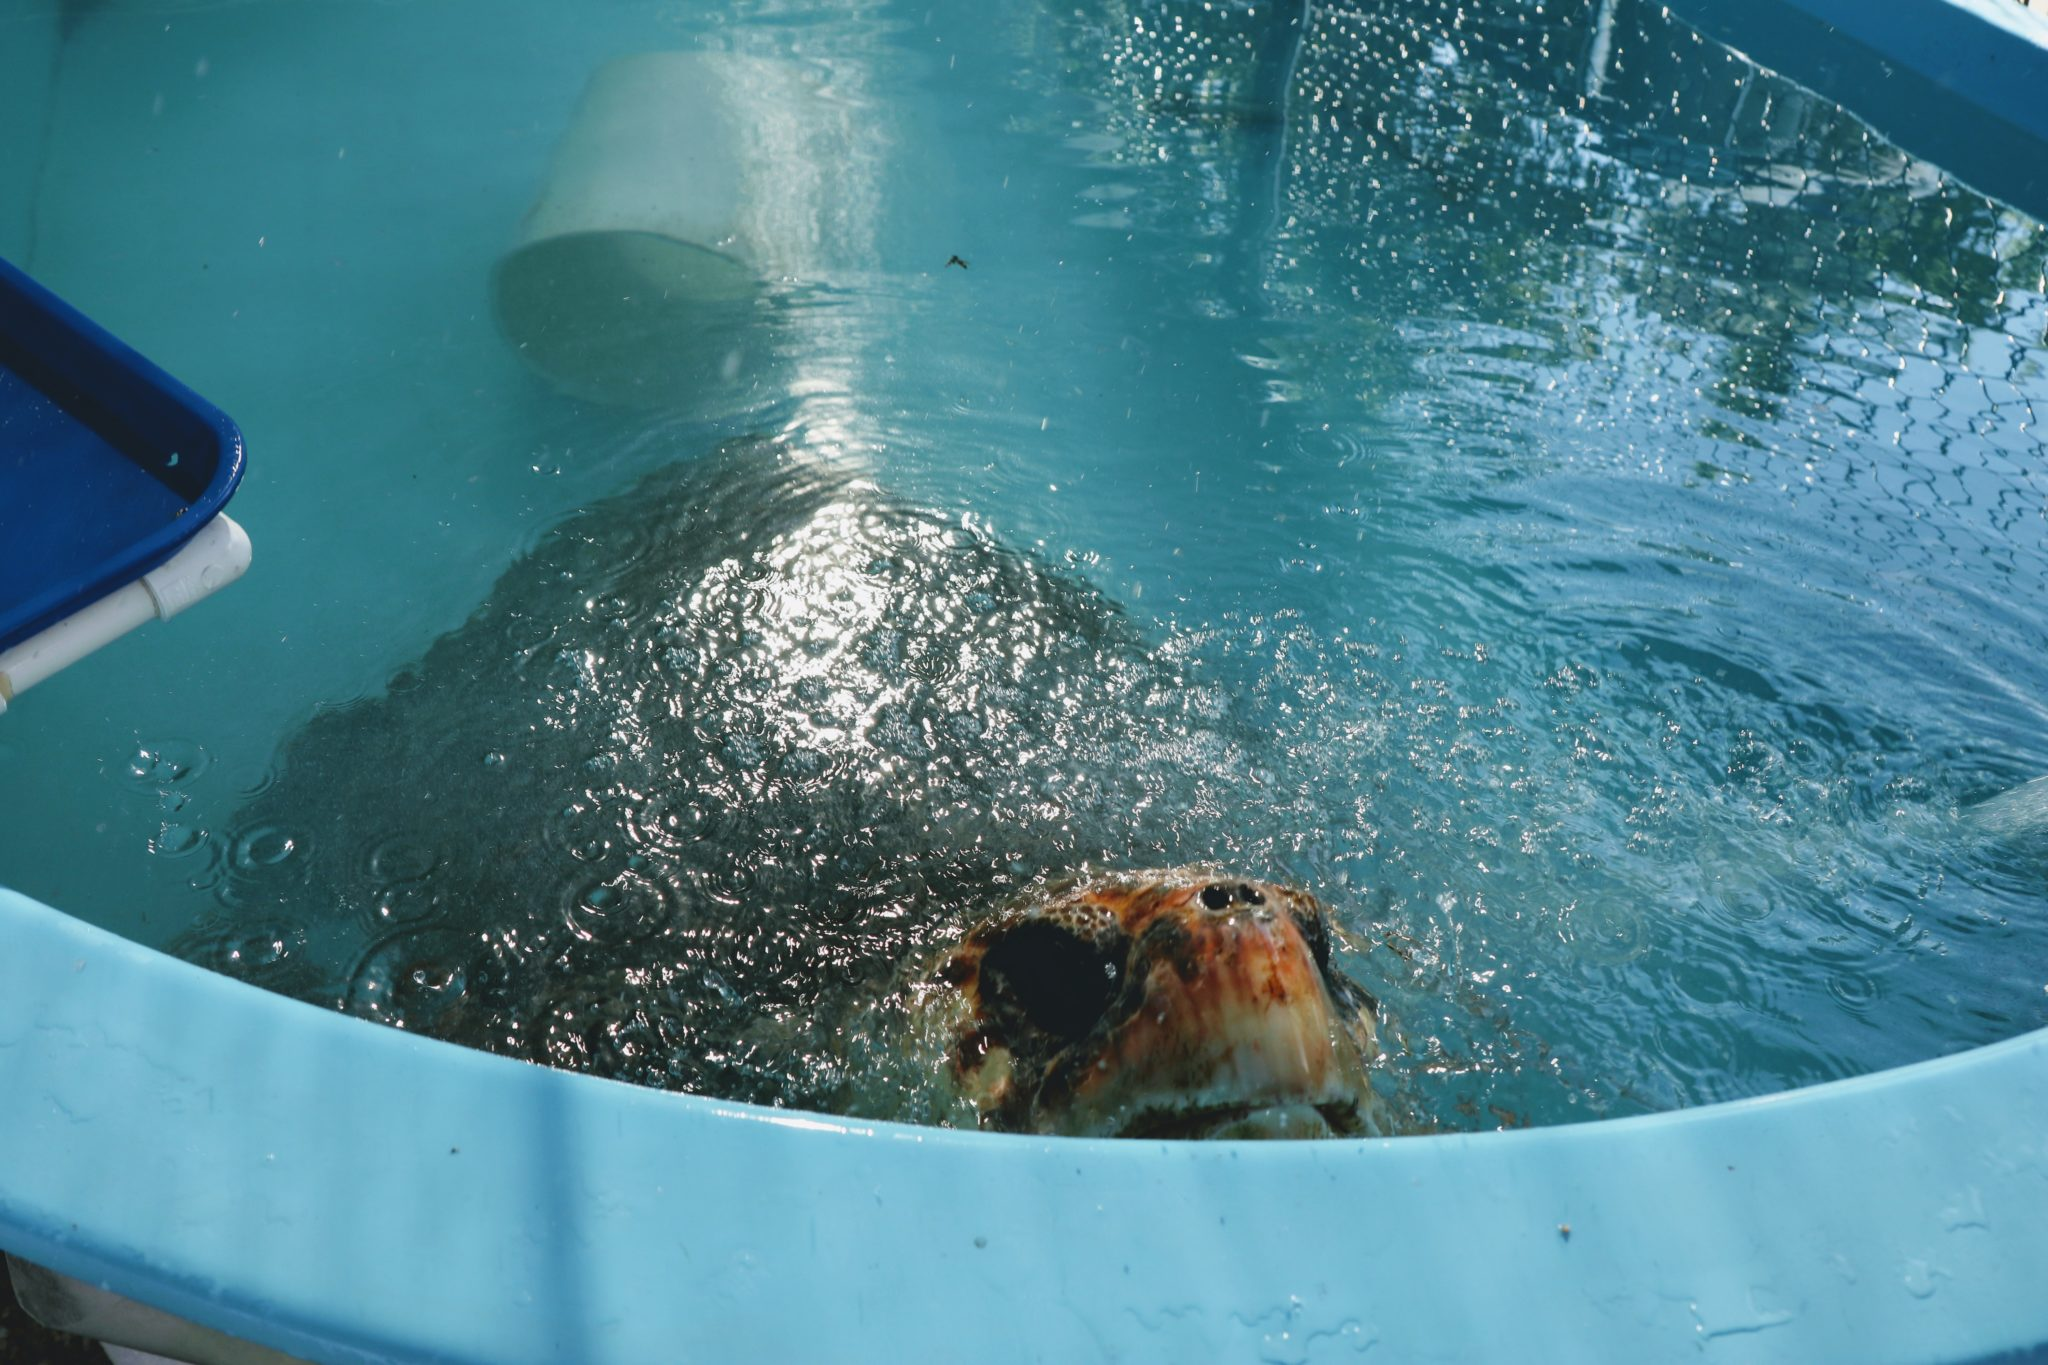 Large Loggerhead sea turtle in his treatment tank poking his nose out of the water